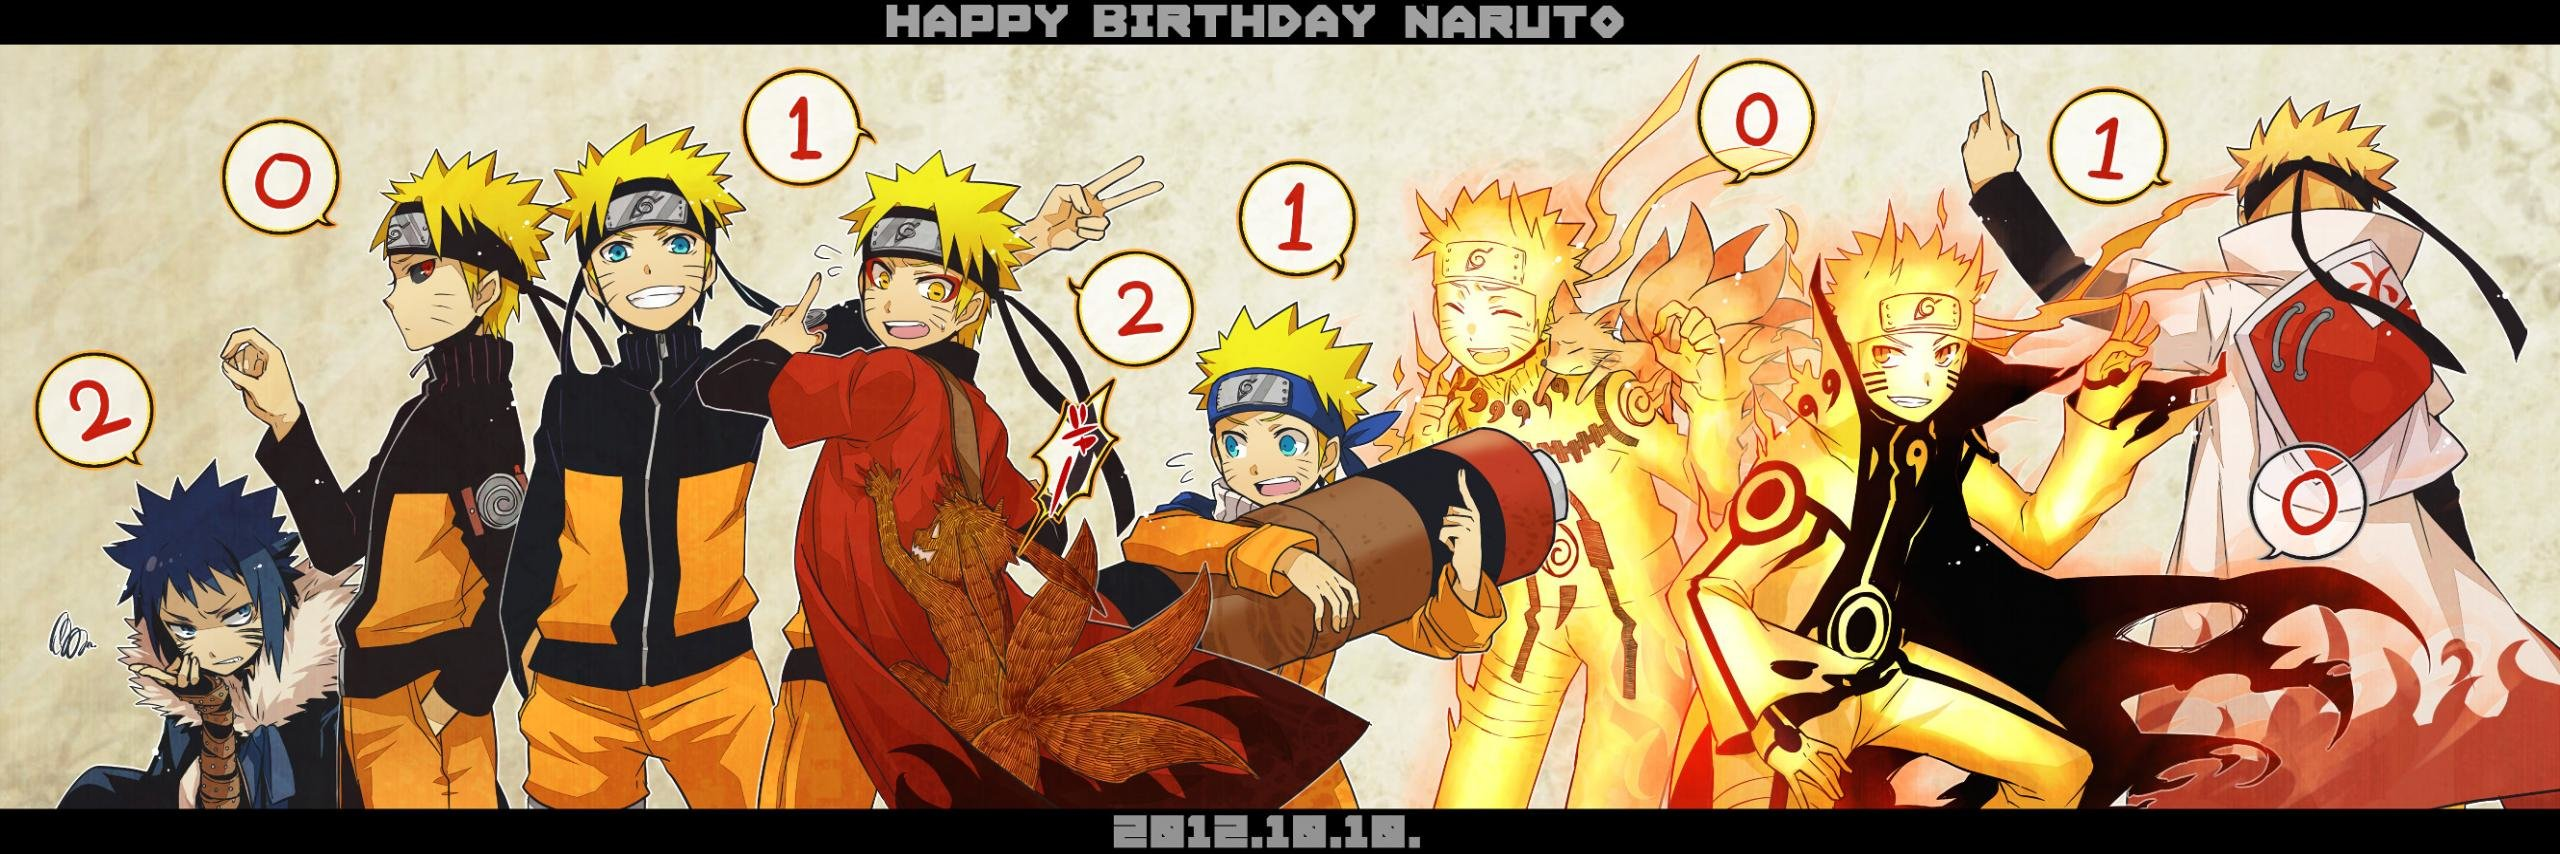 Best Wallpaper Naruto Dual Screen - naruto-wallpaper-dual-screen-2560x854-395183  Trends_51210.jpg